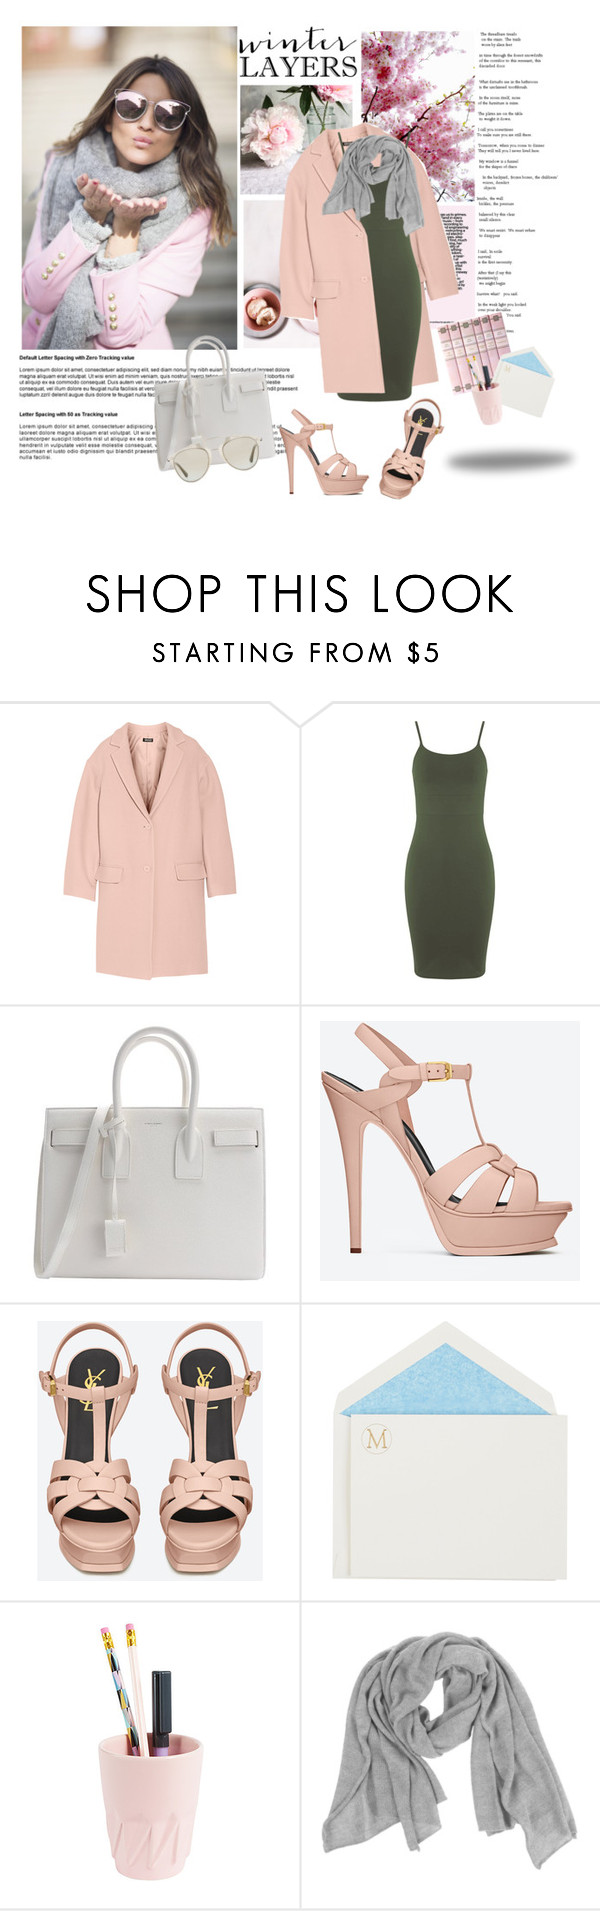 """""""Chasing Your Death Without A Care"""" by skinny-lovexx ❤ liked on Polyvore featuring DKNY, Miss Selfridge, Yves Saint Laurent, Connor, Christian Dior, women's clothing, women's fashion, women, female and woman"""